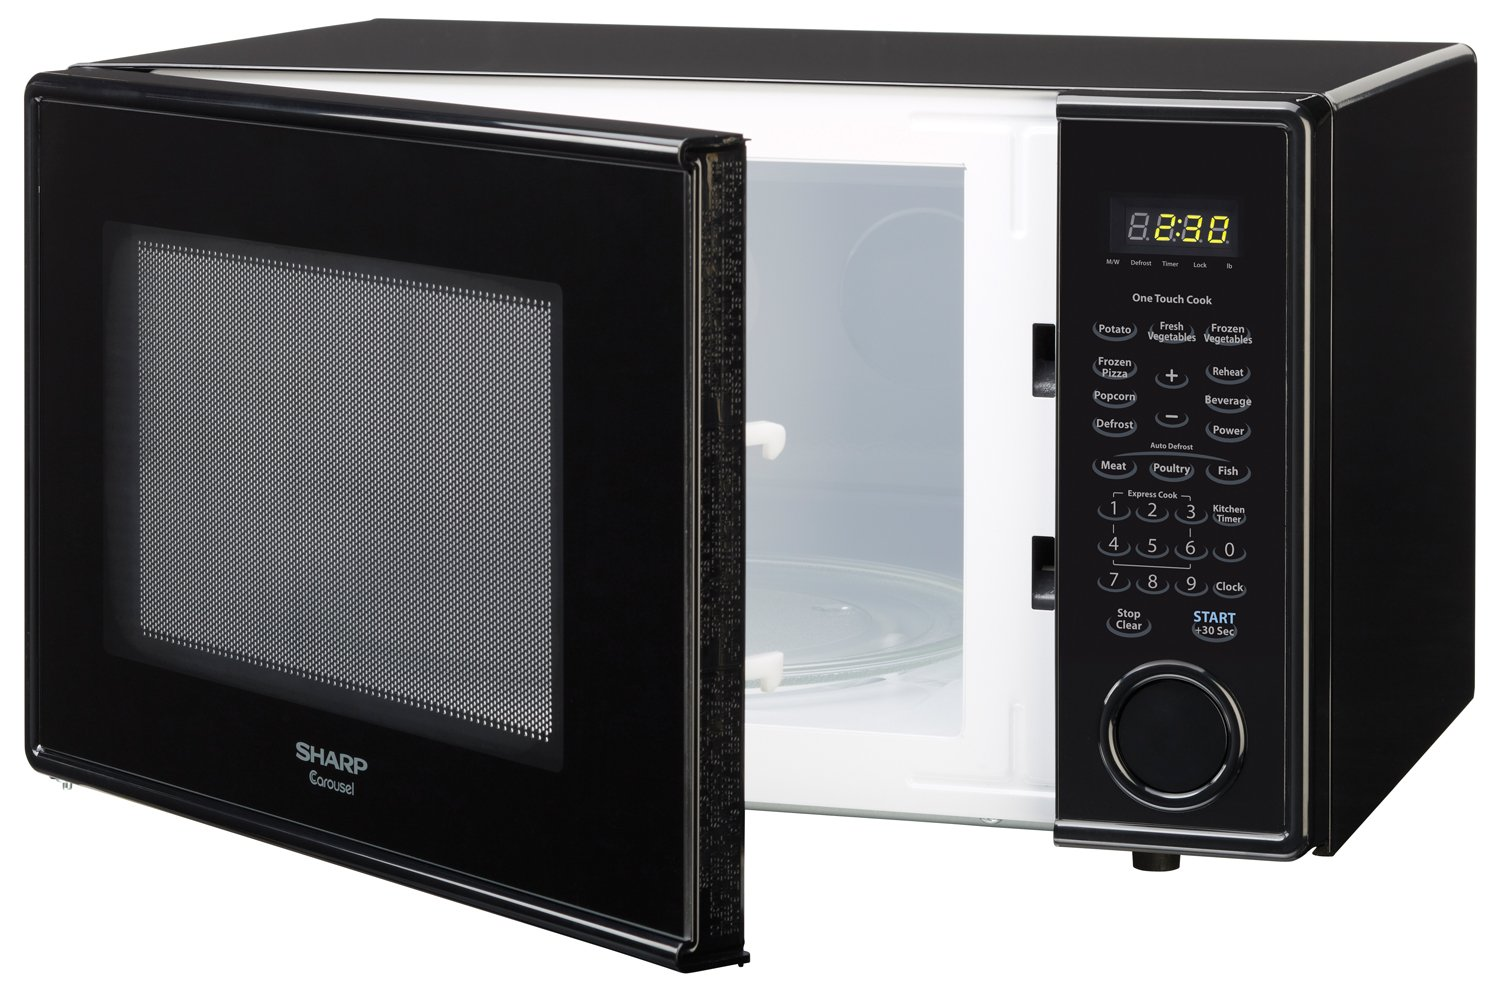 Sharp Countertop Microwave Oven Zr309yk : Best Wall Ovens for Home Use - Top Best Kitchen Wall Ovens Reviews